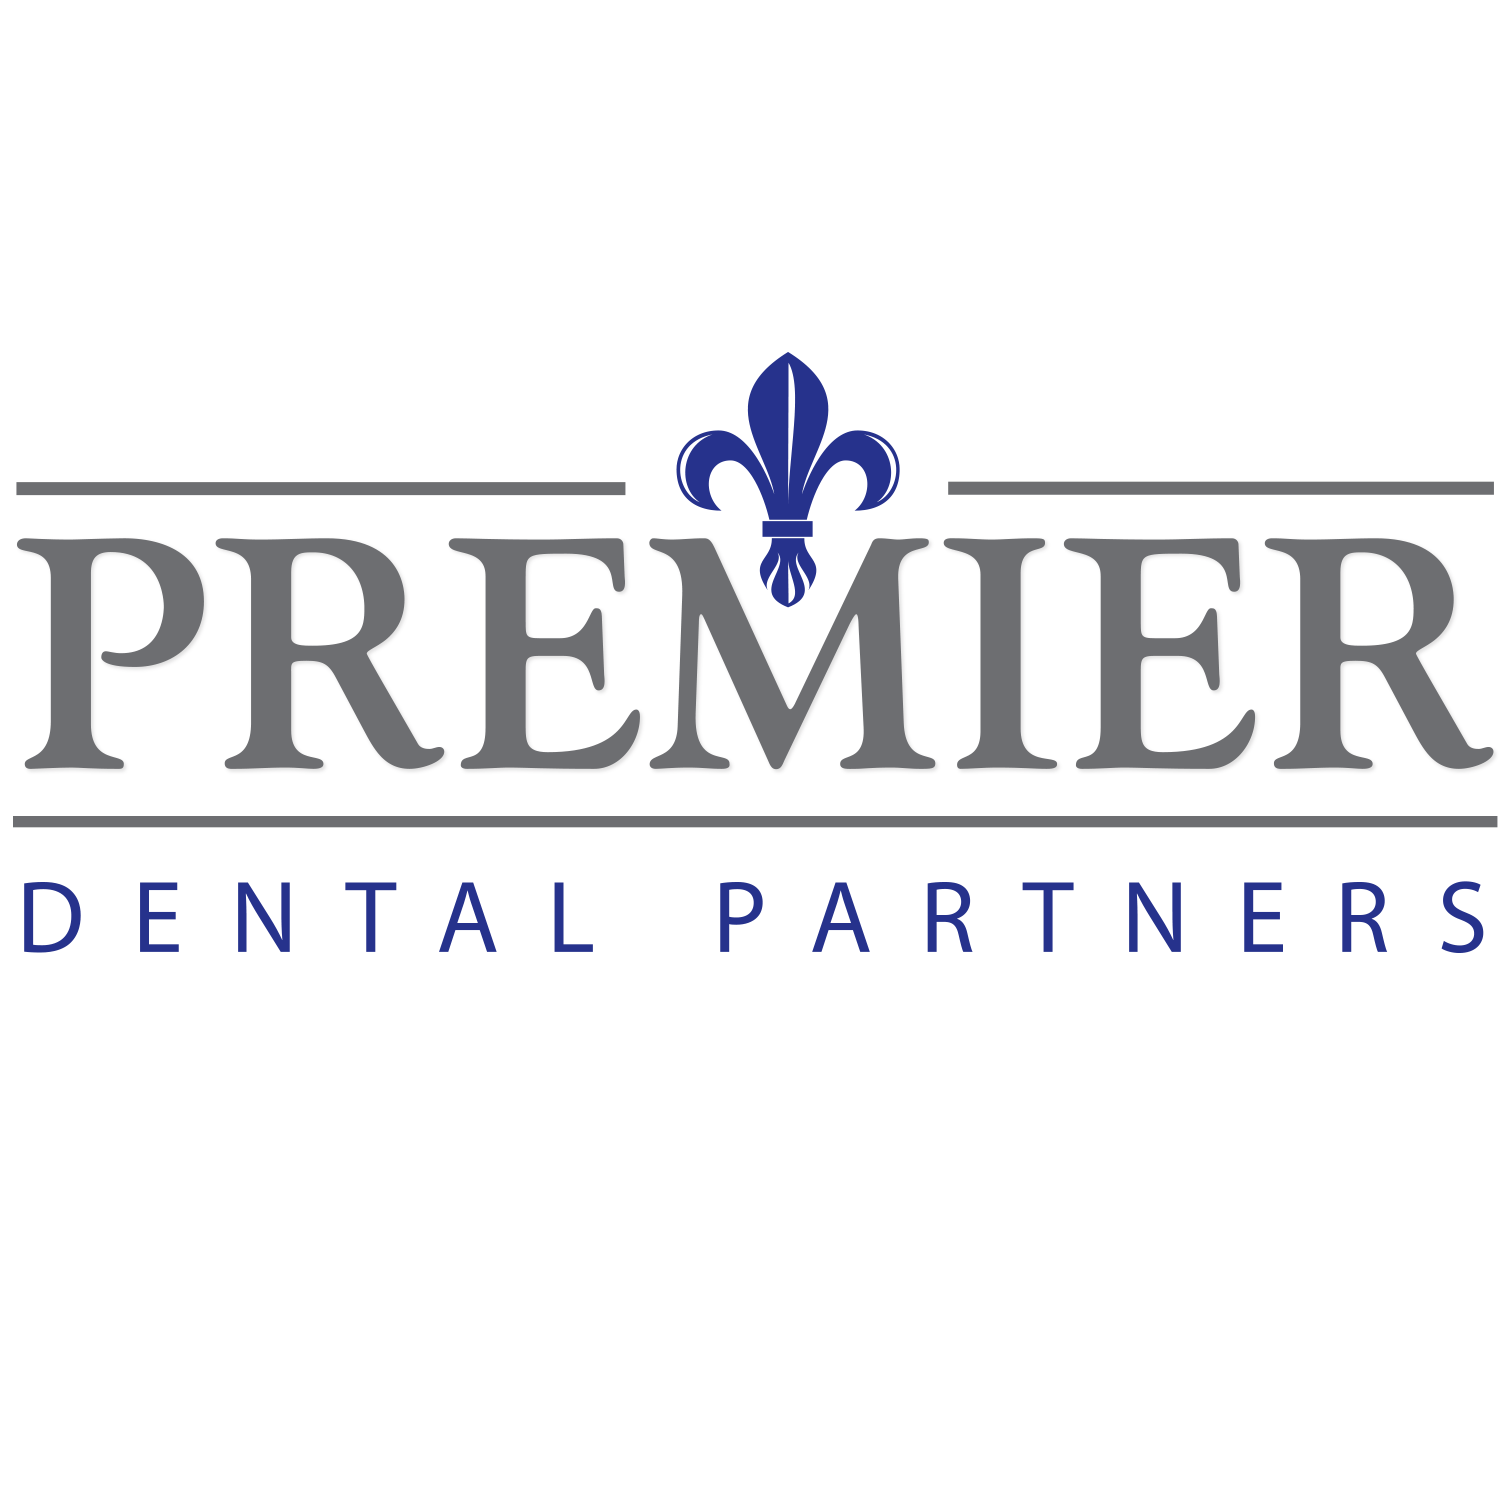 Premier Dental Partners Ellisville - Ellisville, MO - Dentists & Dental Services